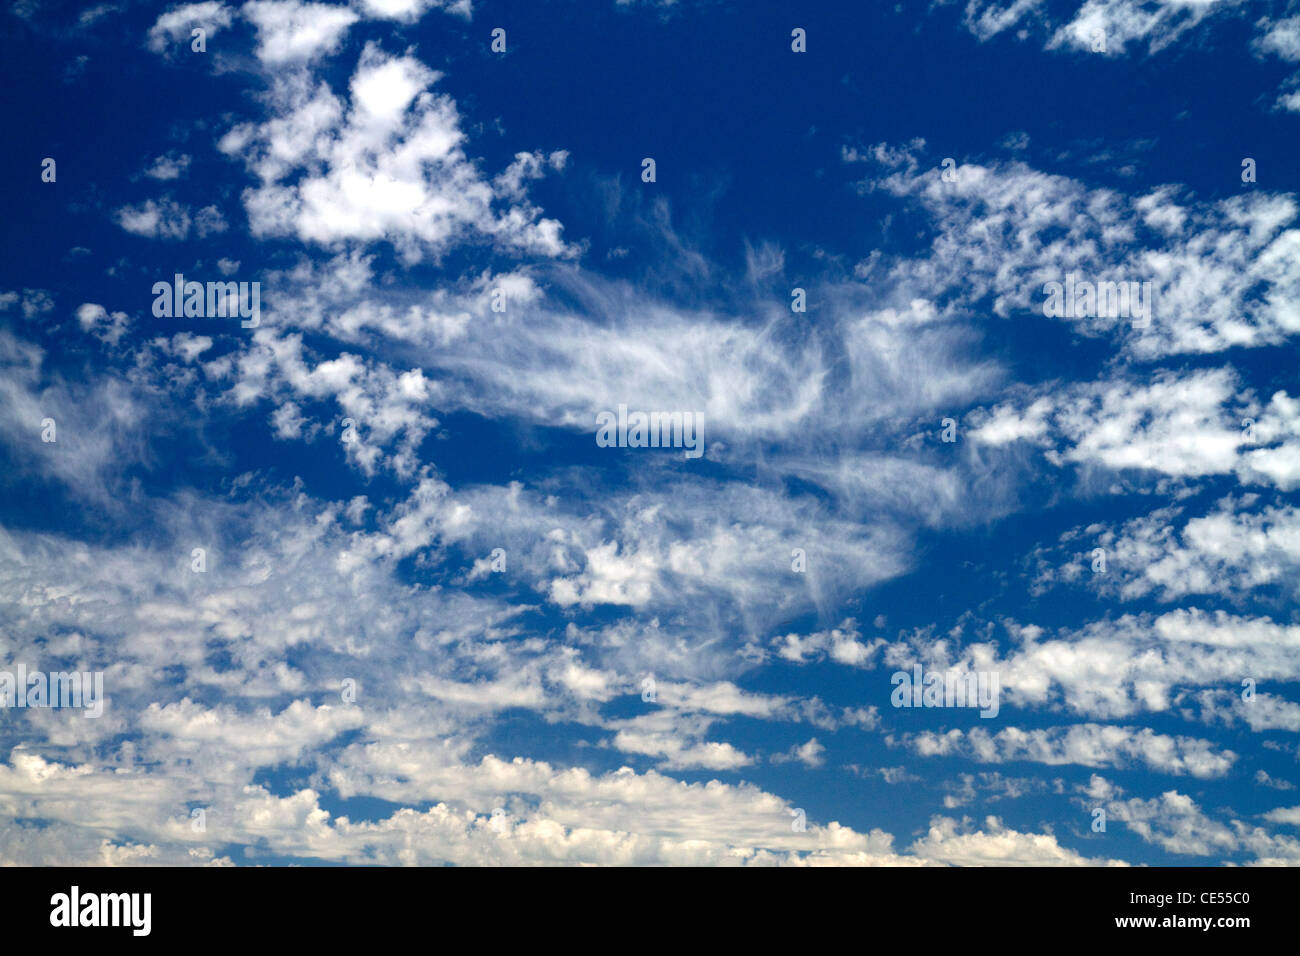 Cirrus clouds in the blue sky. - Stock Image